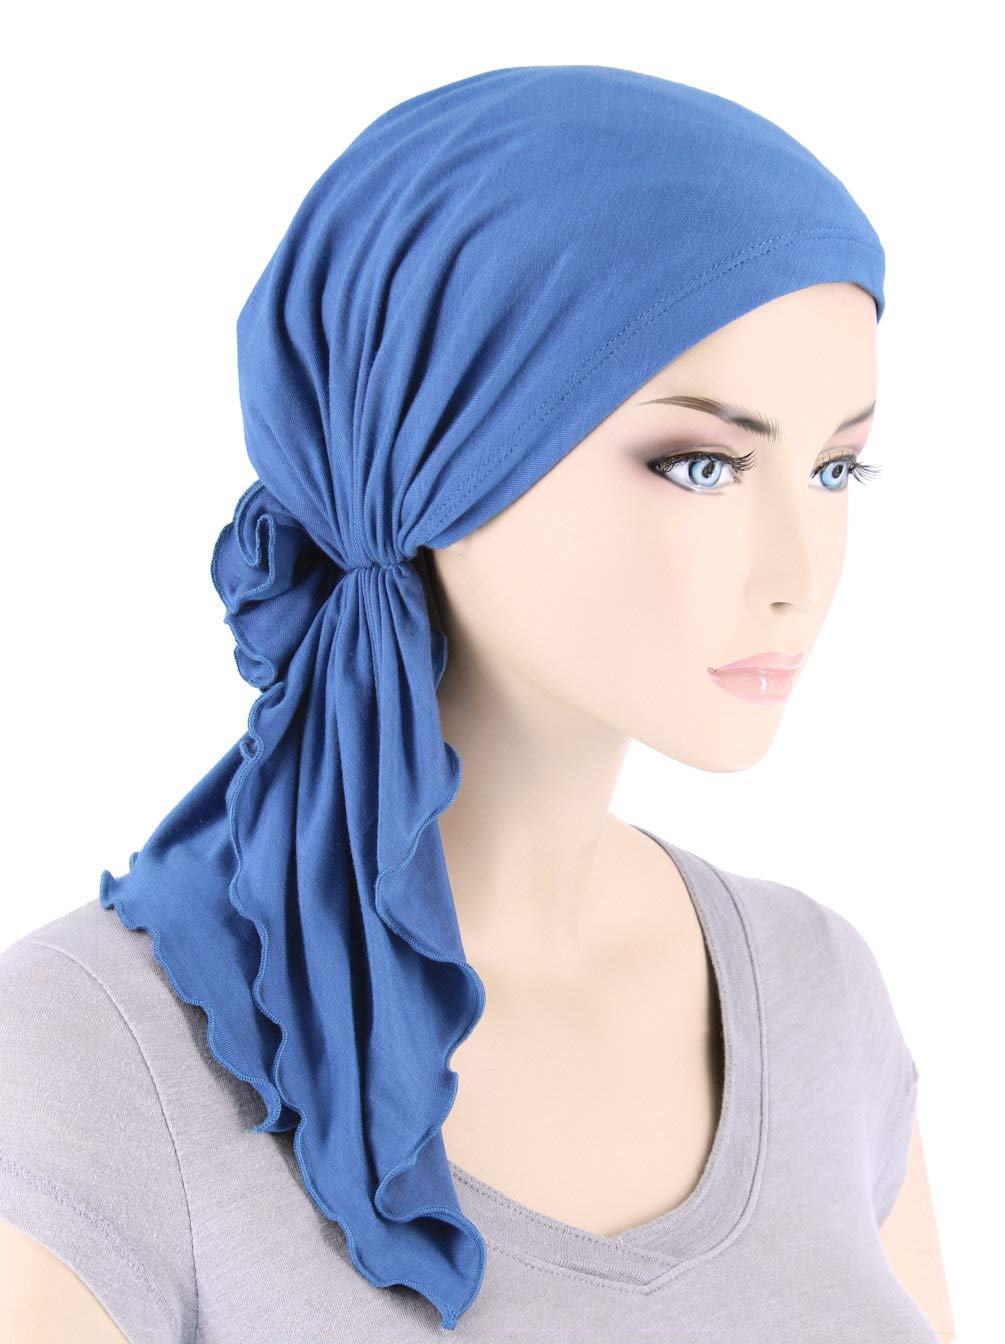 The Bella Scarf Lux Ultra Soft Bamboo Chemo Cancer Turban Head Scarves Pre-Tied Periwinkle Blue